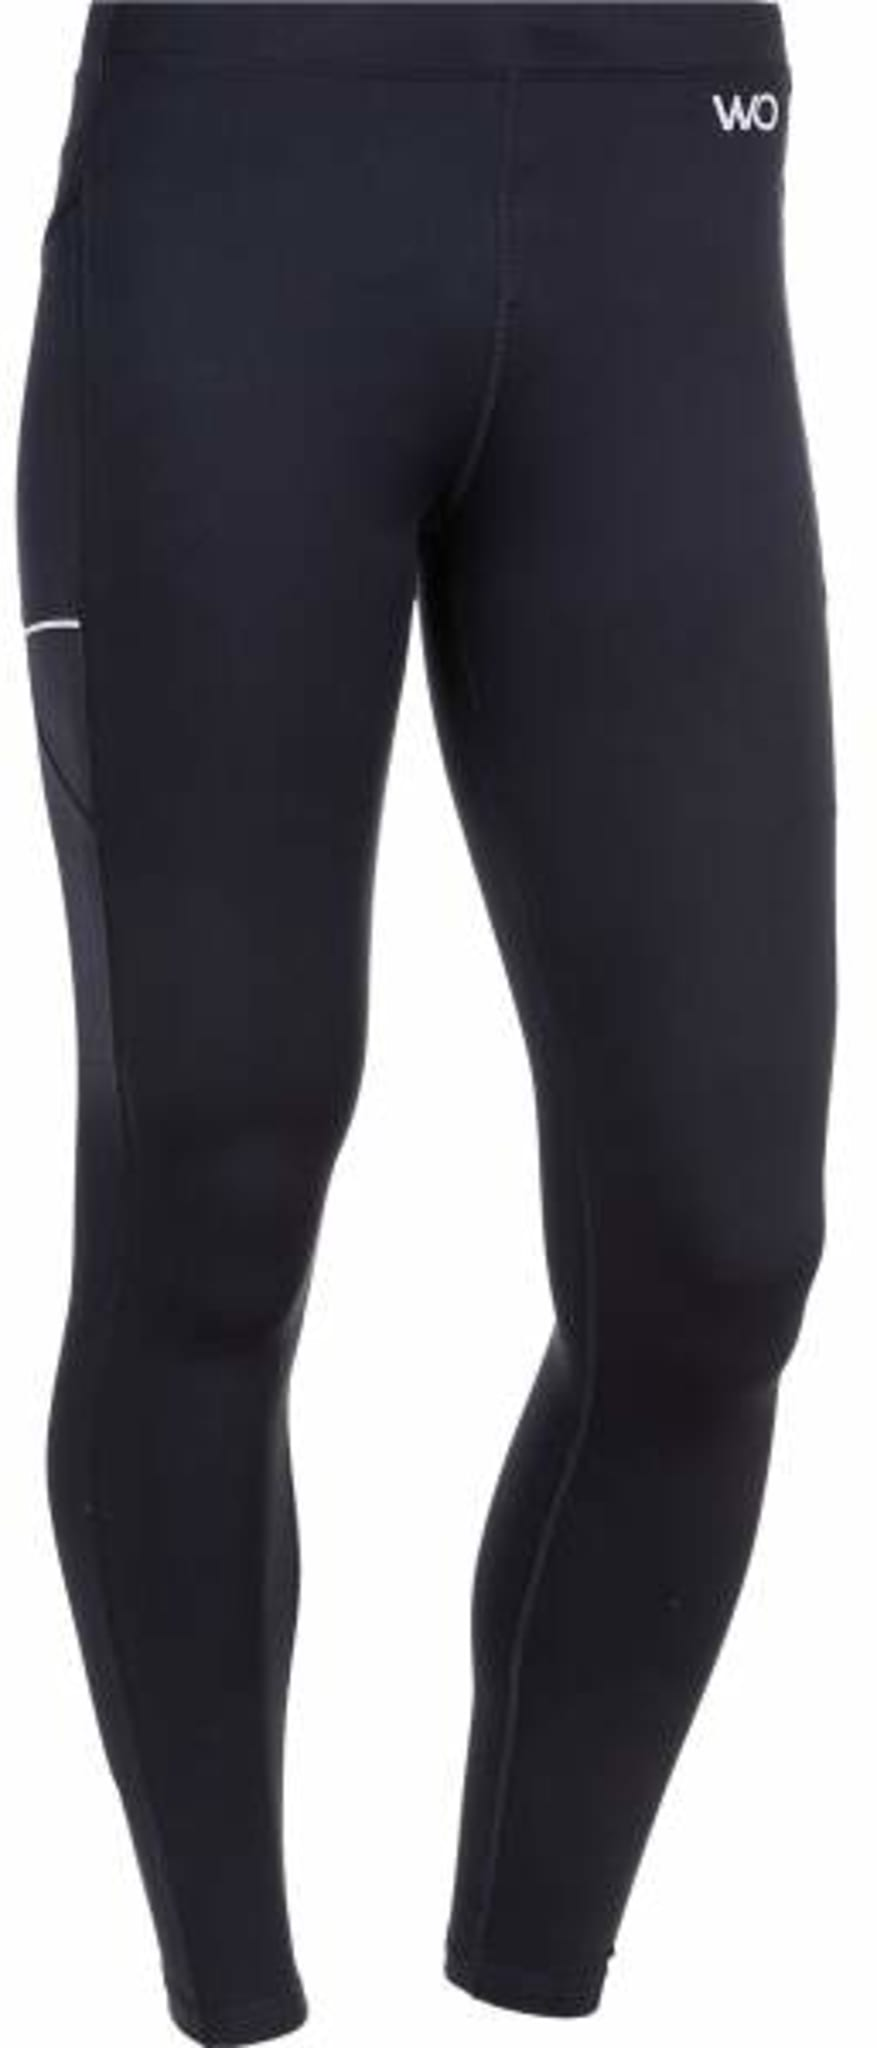 Clevelo Long Running Tights Unisex